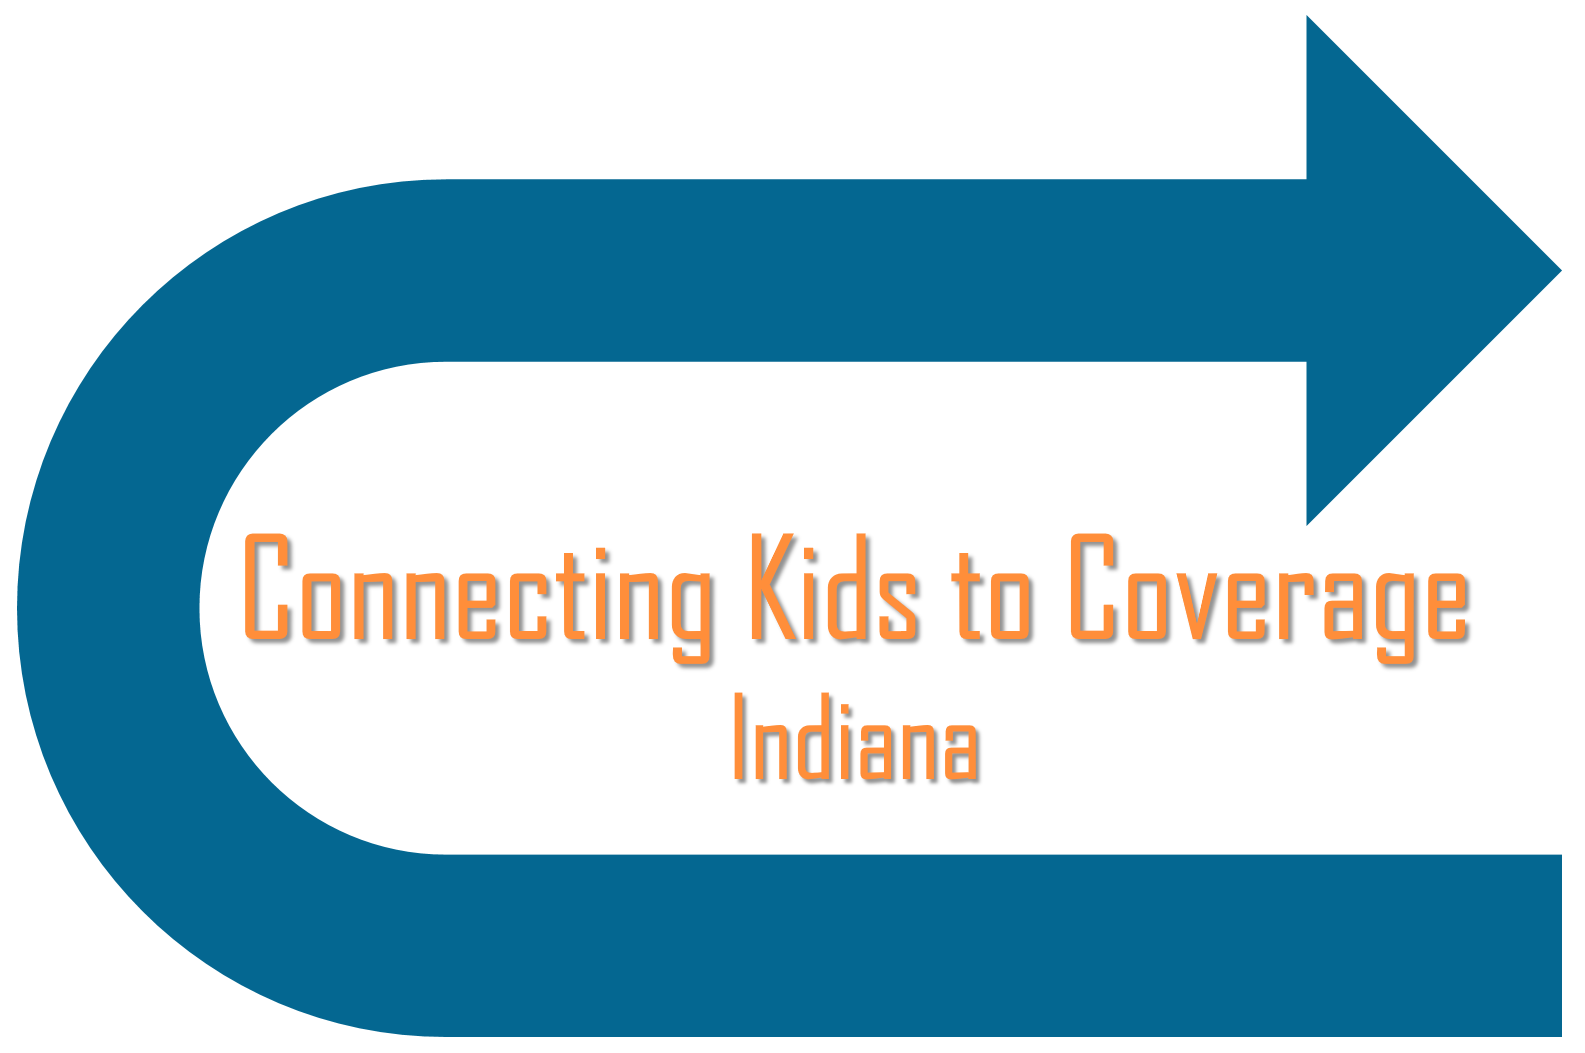 Connecting Kids to Coverage Indiana - Indiana Rural Health Association